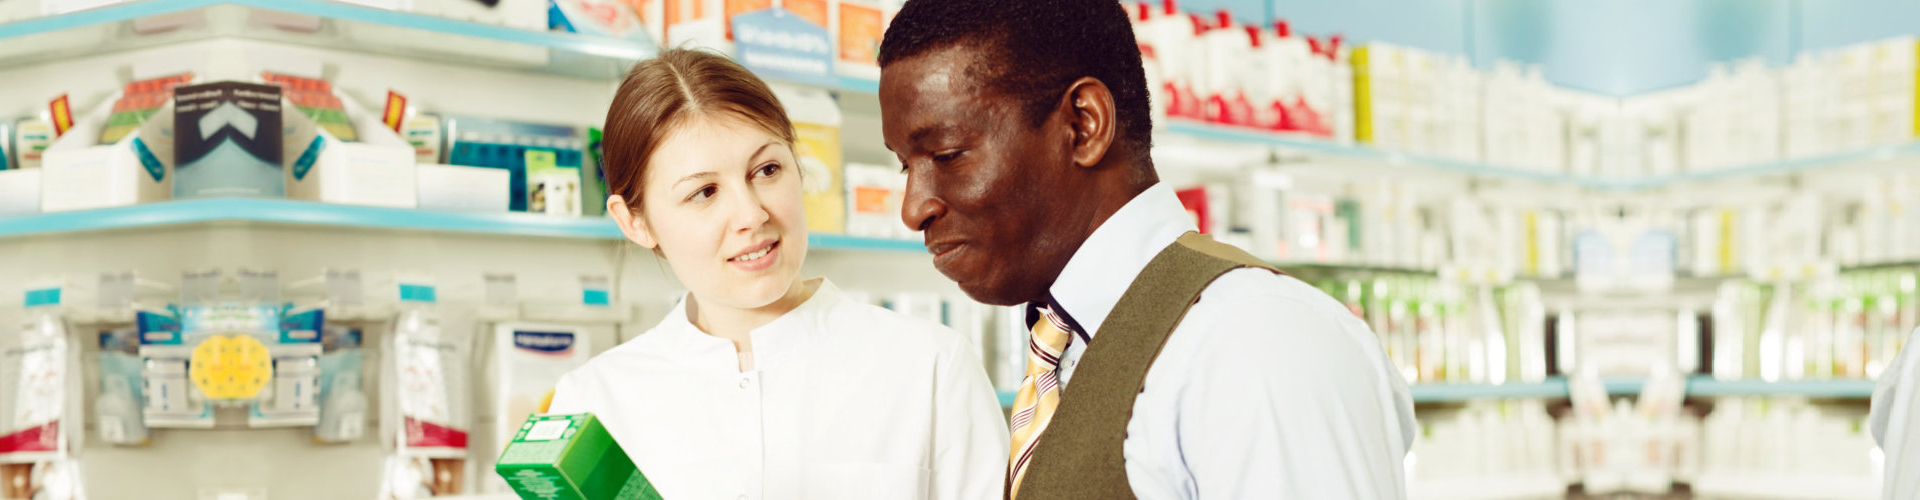 pharmacist chatting with a man